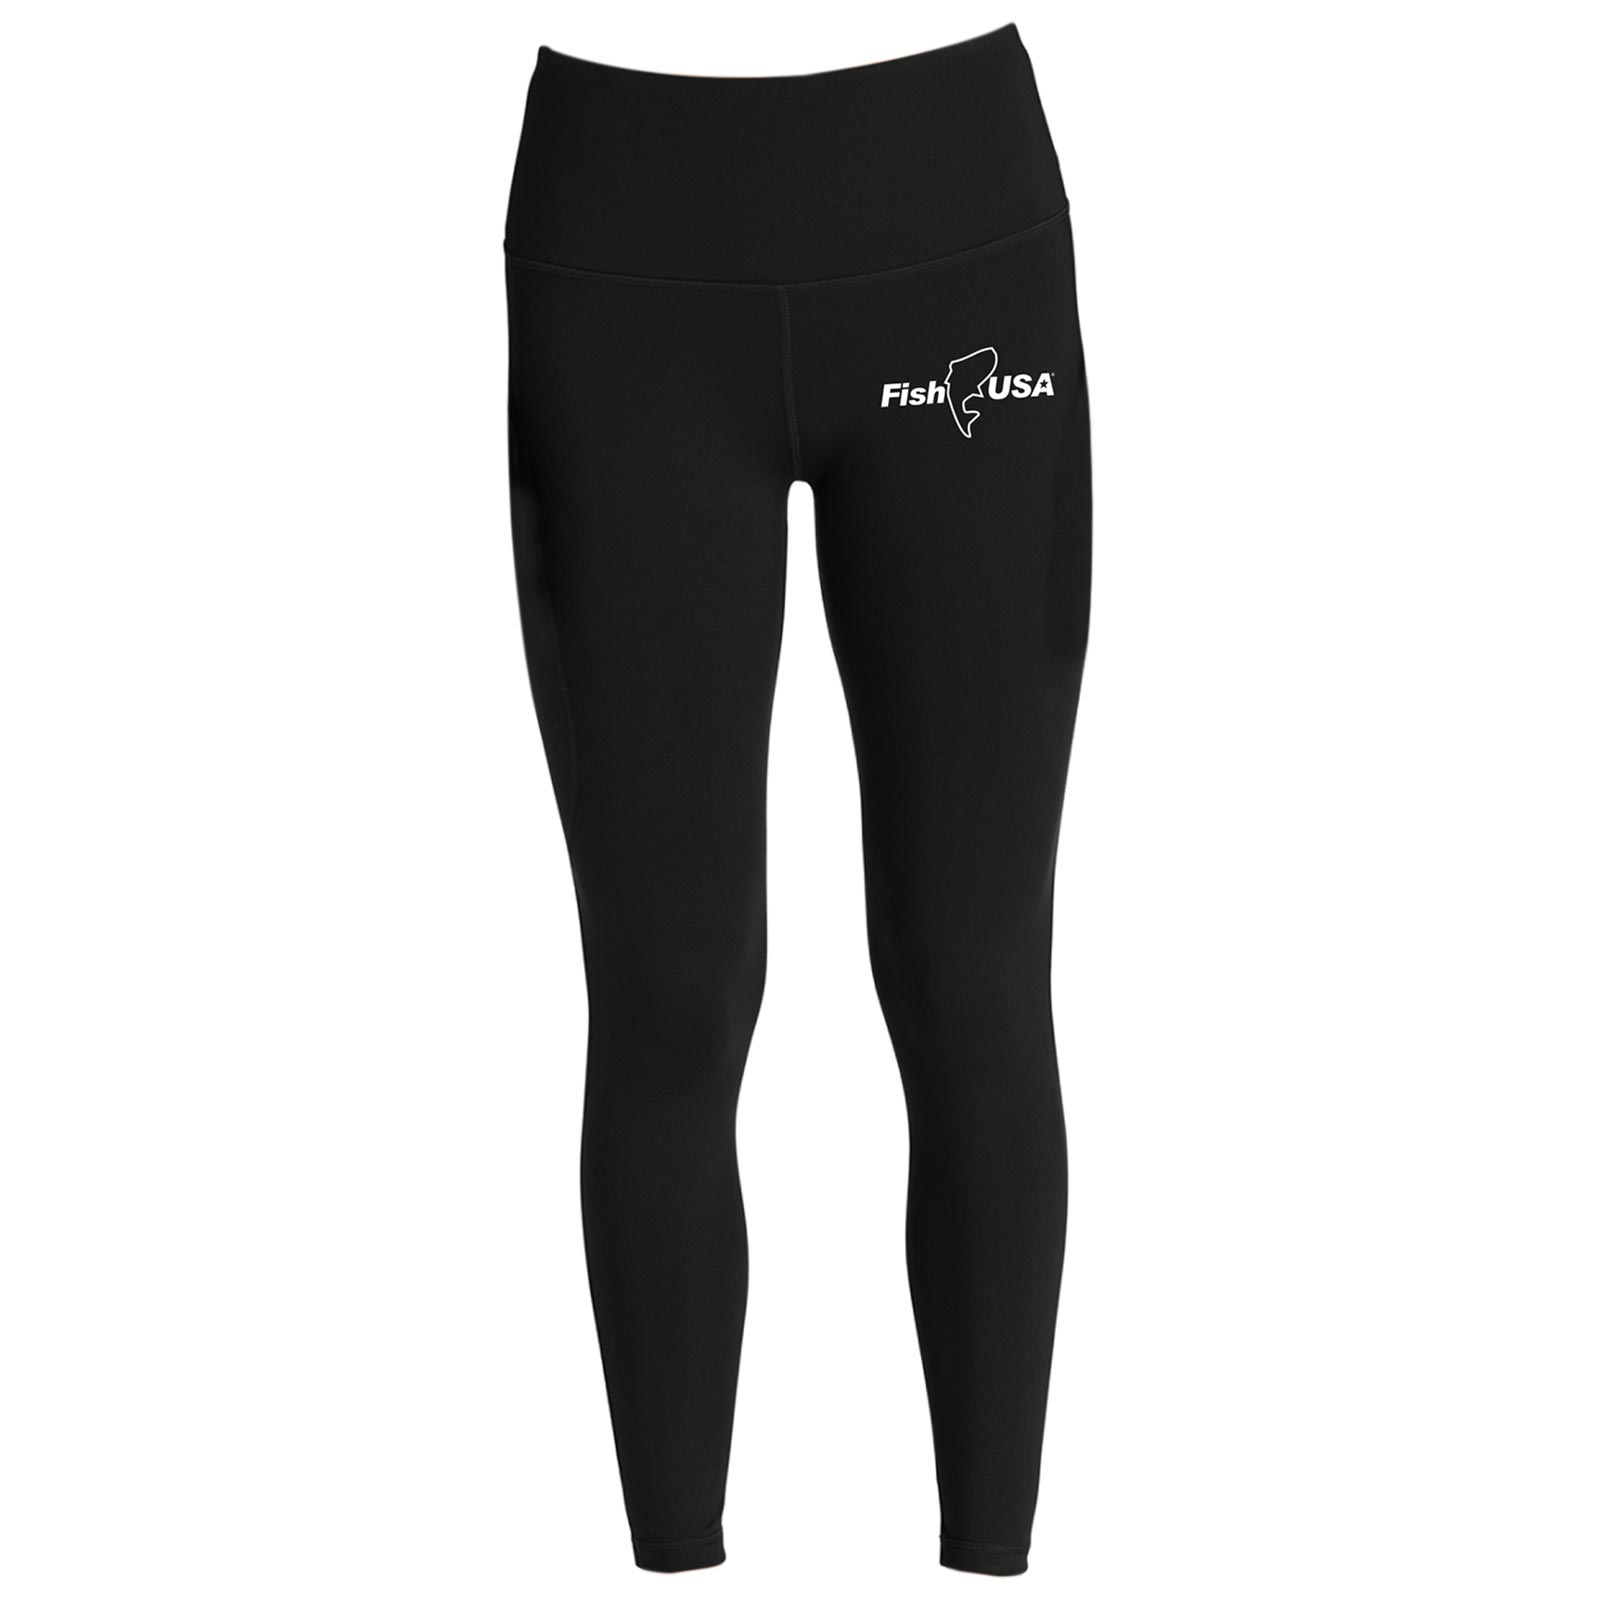 FishUSA Women's Leggings